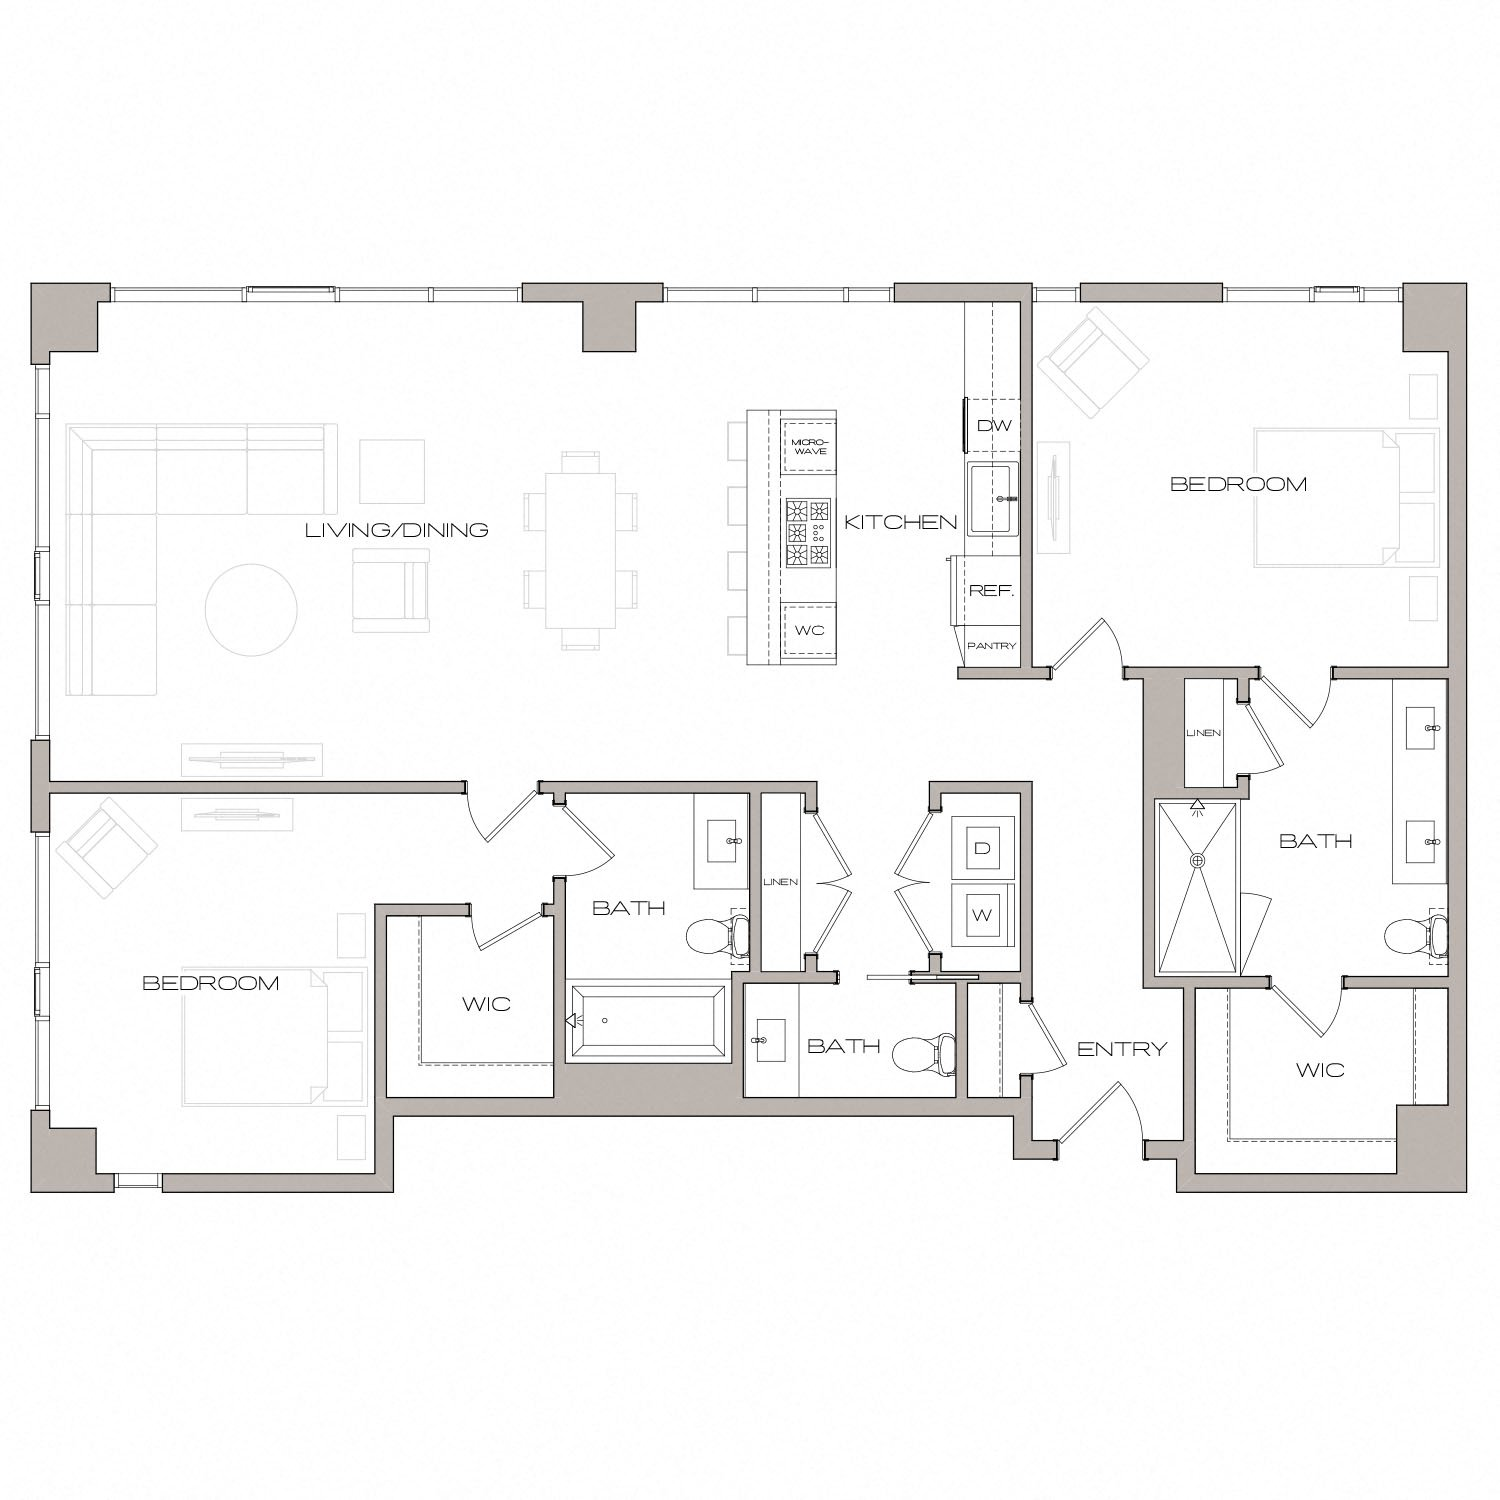 P H 8 floor plan diagram. Penthouse apartment with two bedrooms, two and a half bathrooms, an open kitchen living and dining area, and a washer dryer.